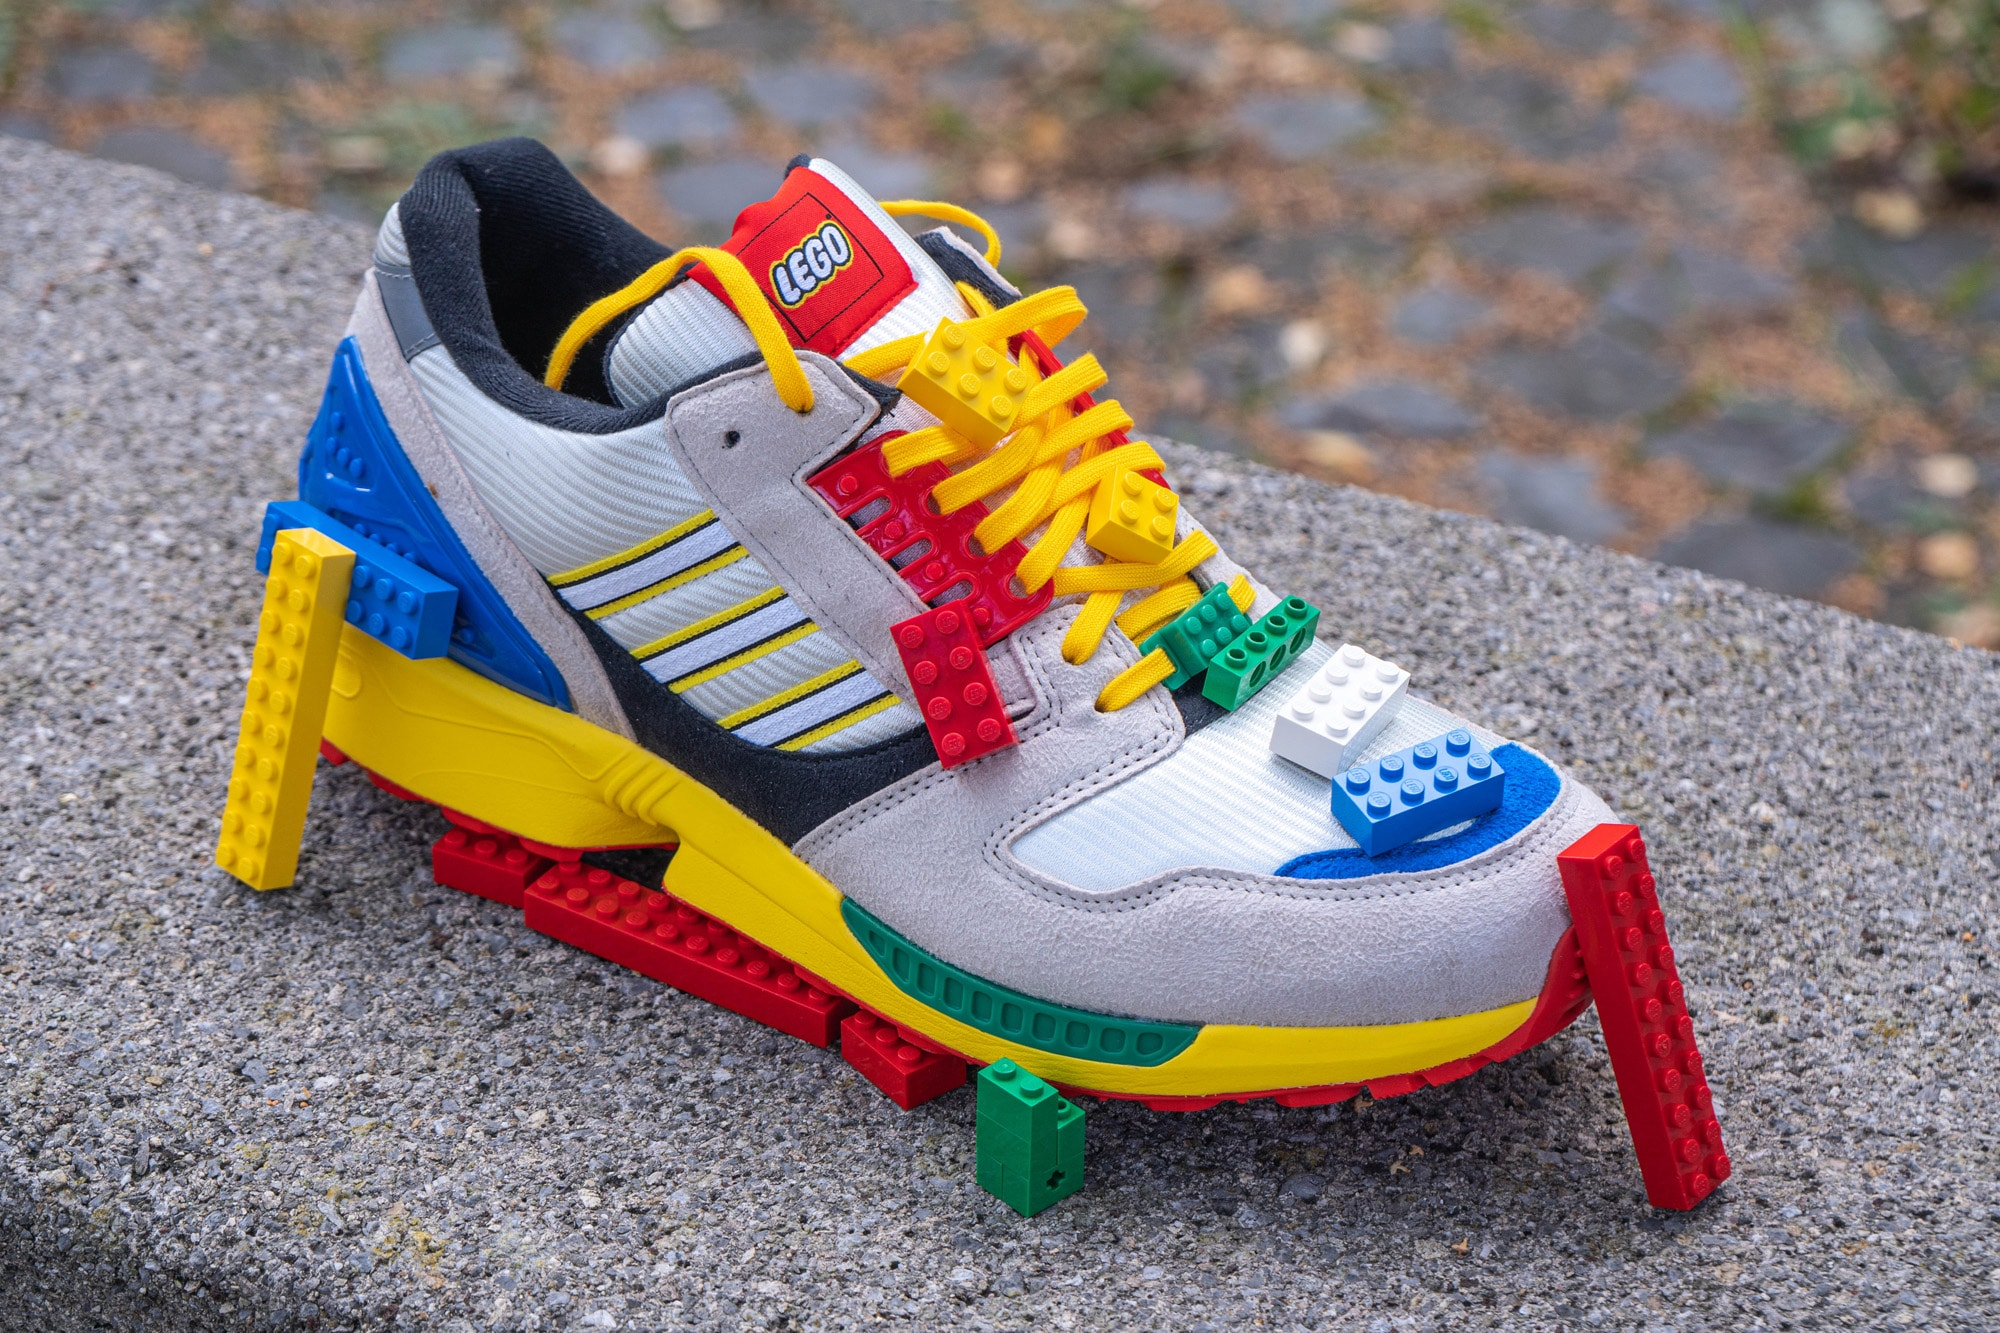 LEGO X Adidas Zx 8000 Review 18